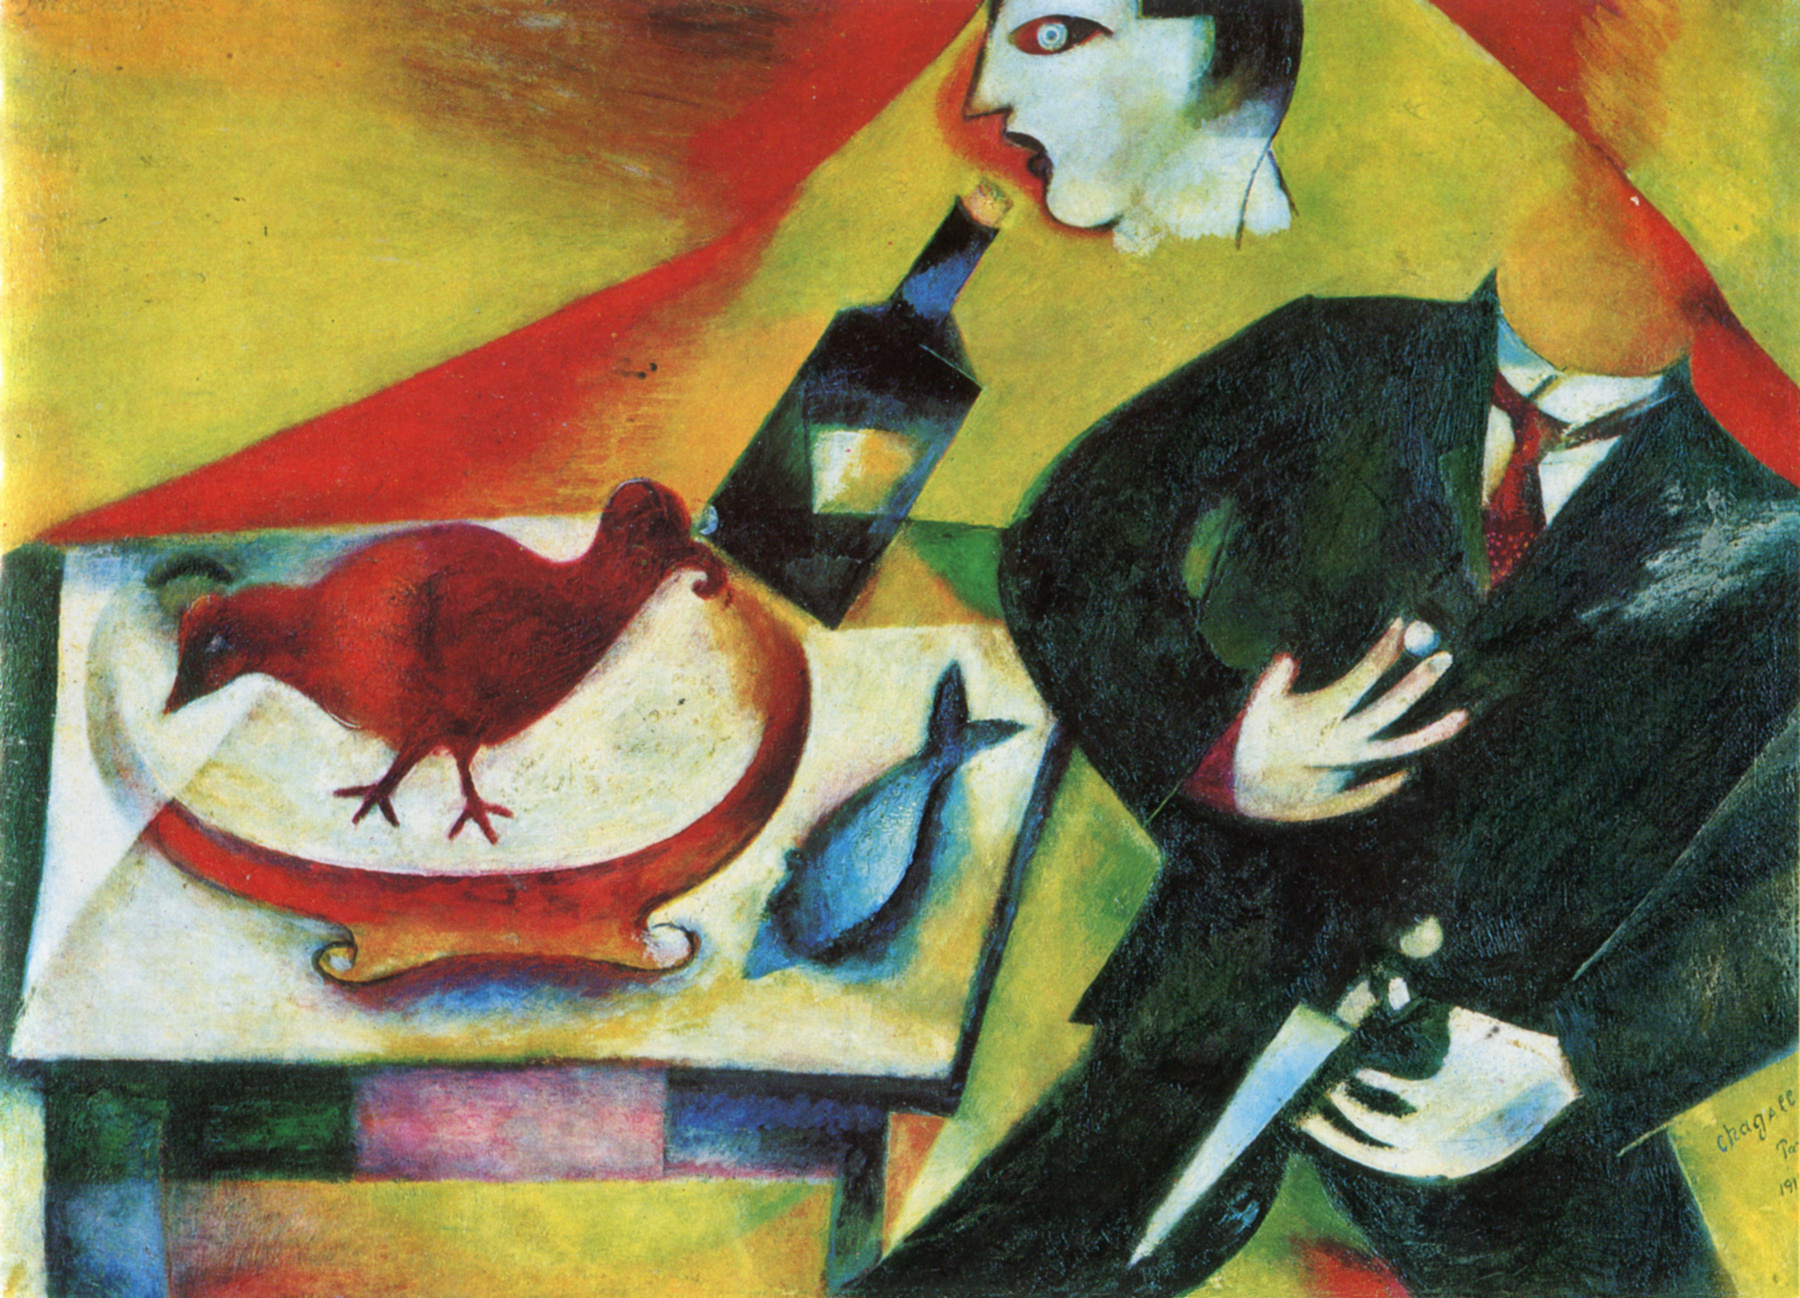 20150107102833!Marc_Chagall,_1911-12,_The_Drunkard_(Le_saoul),_1912,_oil_on_canvas._85_x_115_cm._Private_collection